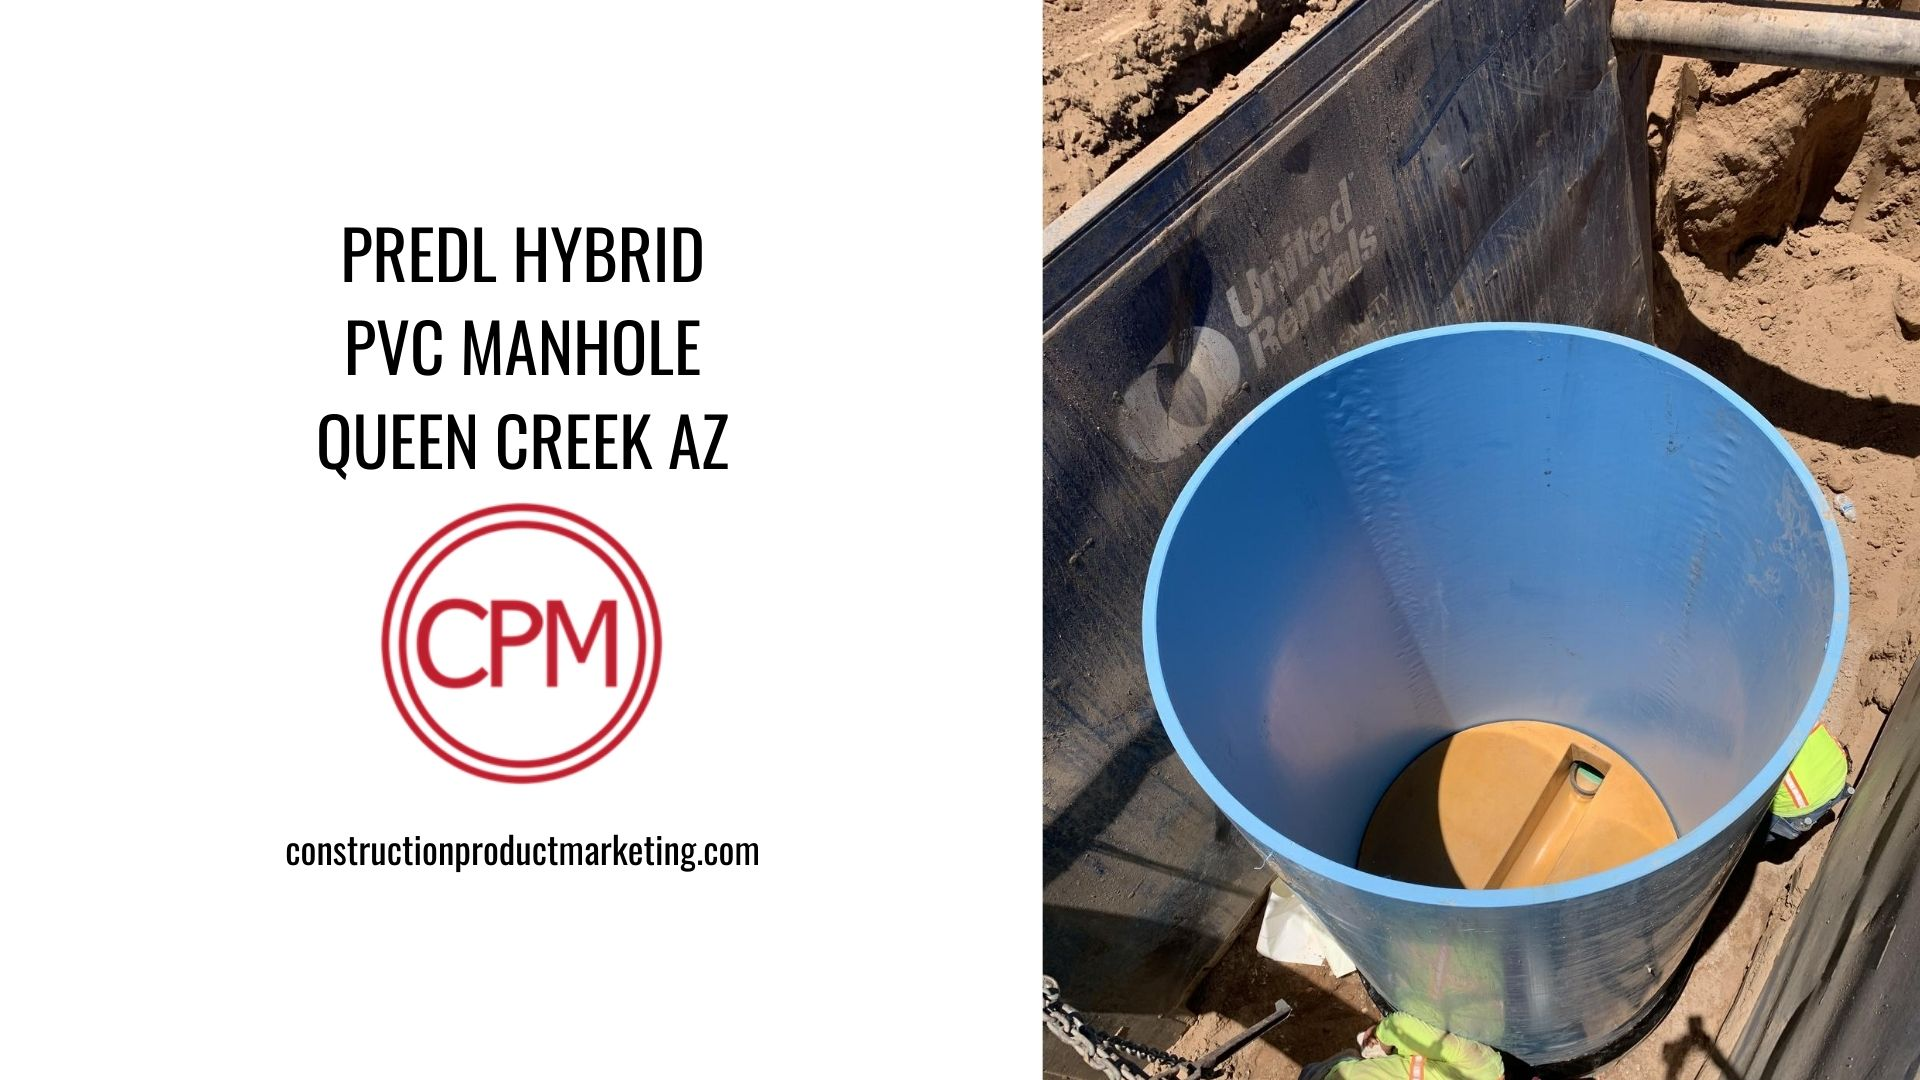 Predl Hybrid PVC Manhole, Queen Creek AZ